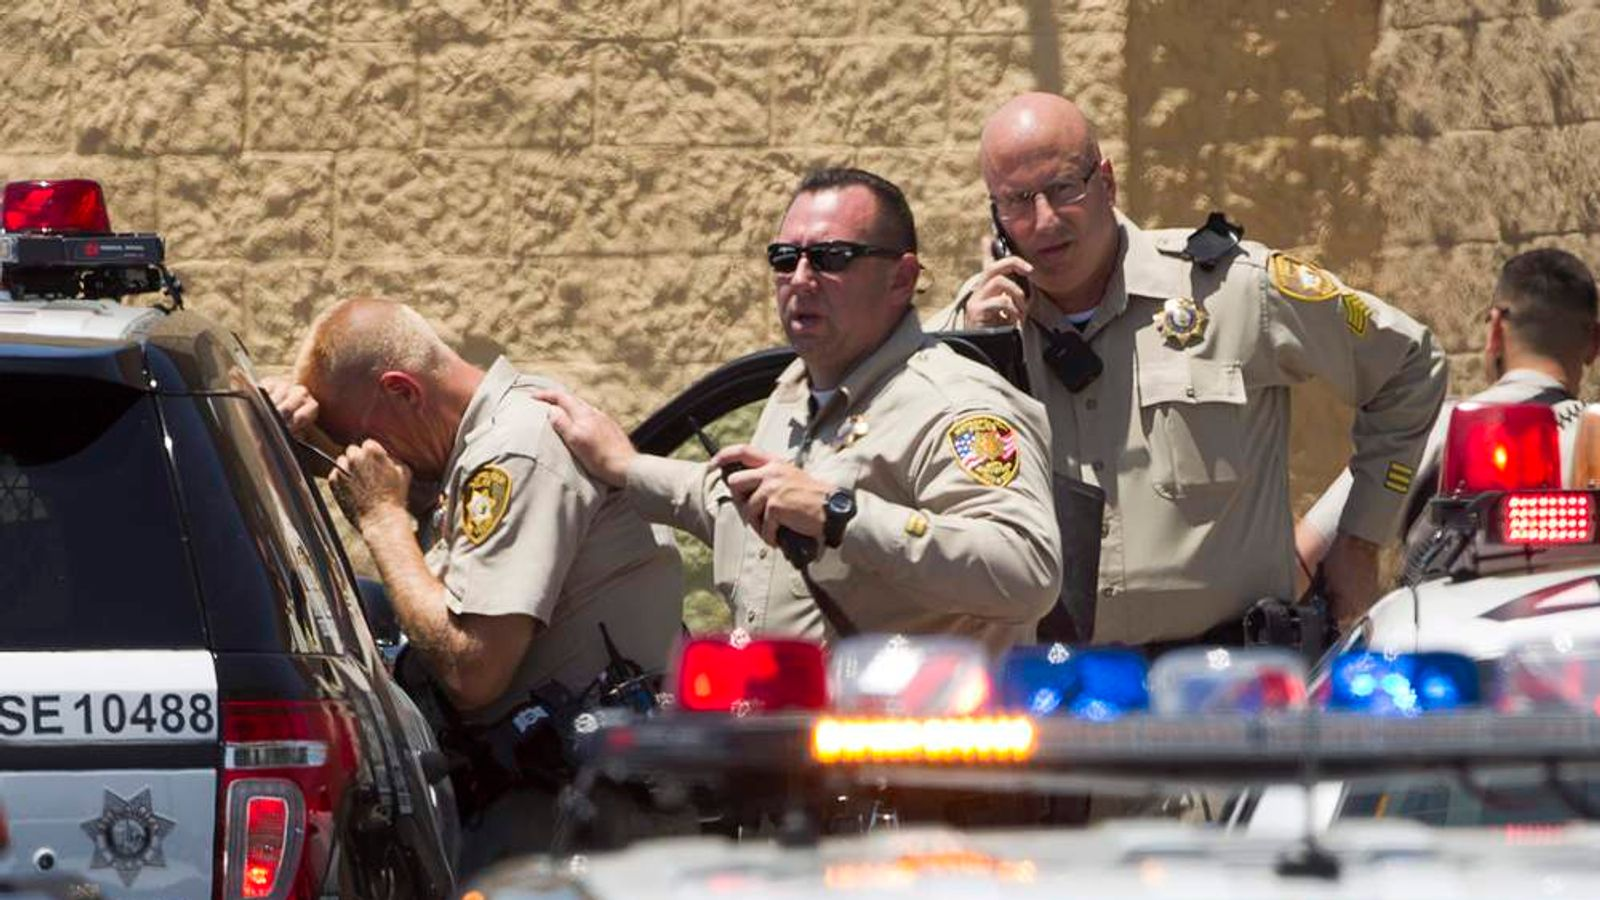 Metro Police officers are shown outside a Wal-Mart after a shooting in Las Vegas